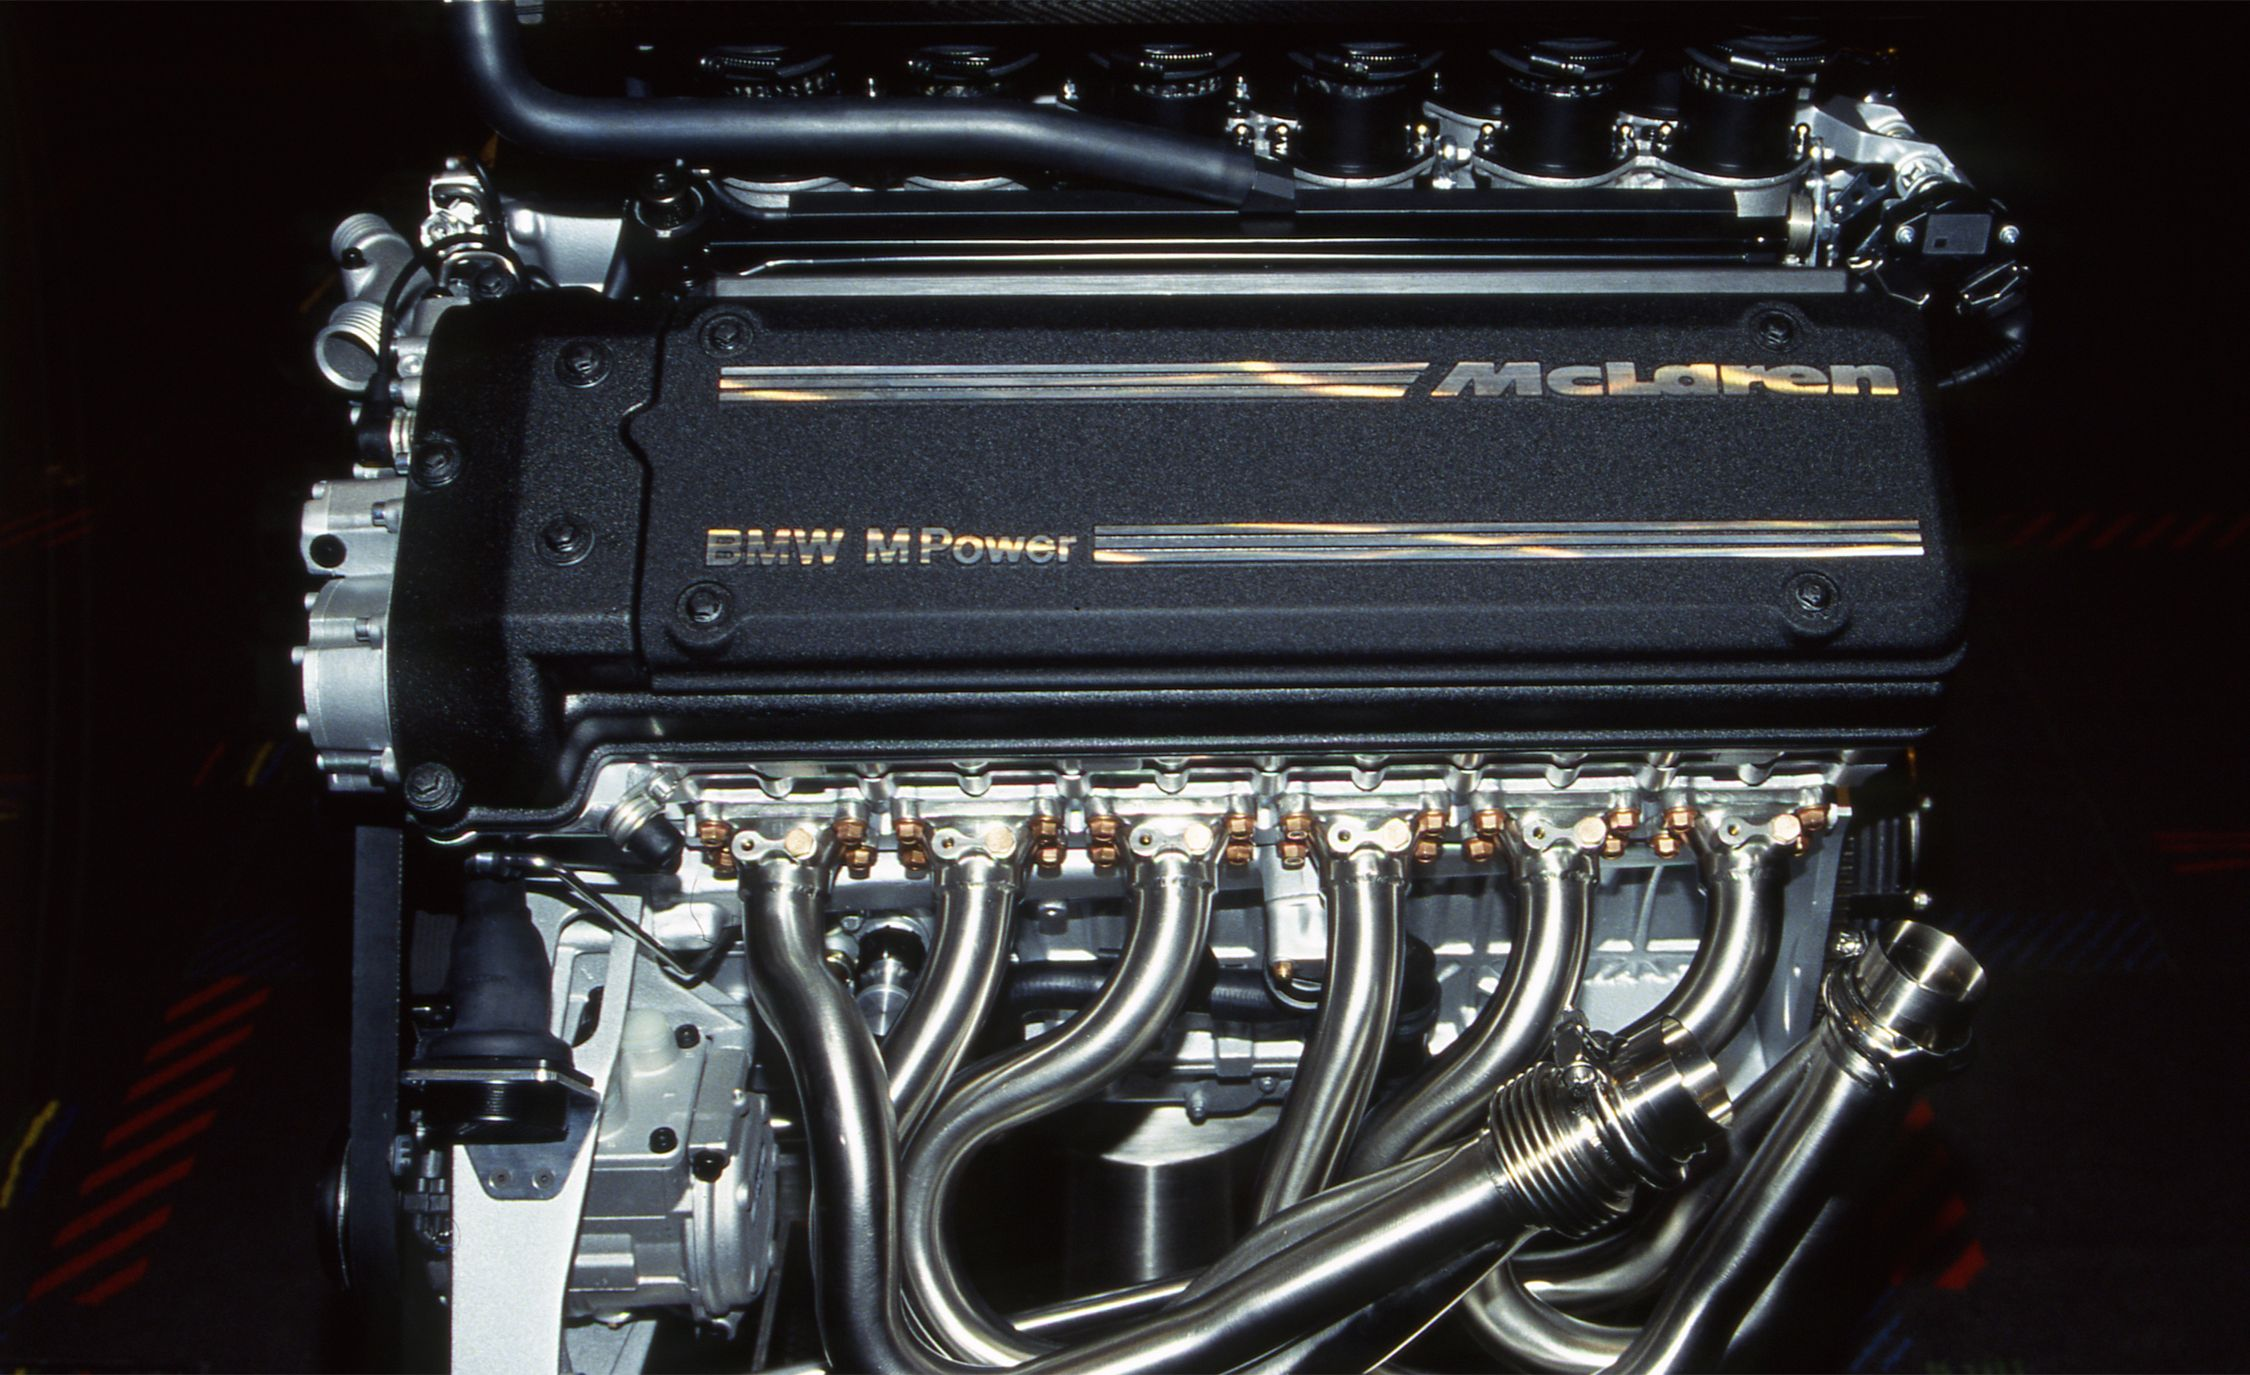 The Best Naturally Aspirated Engines Of All Time 1990 Acura Integra Engine Free Image For User Manual